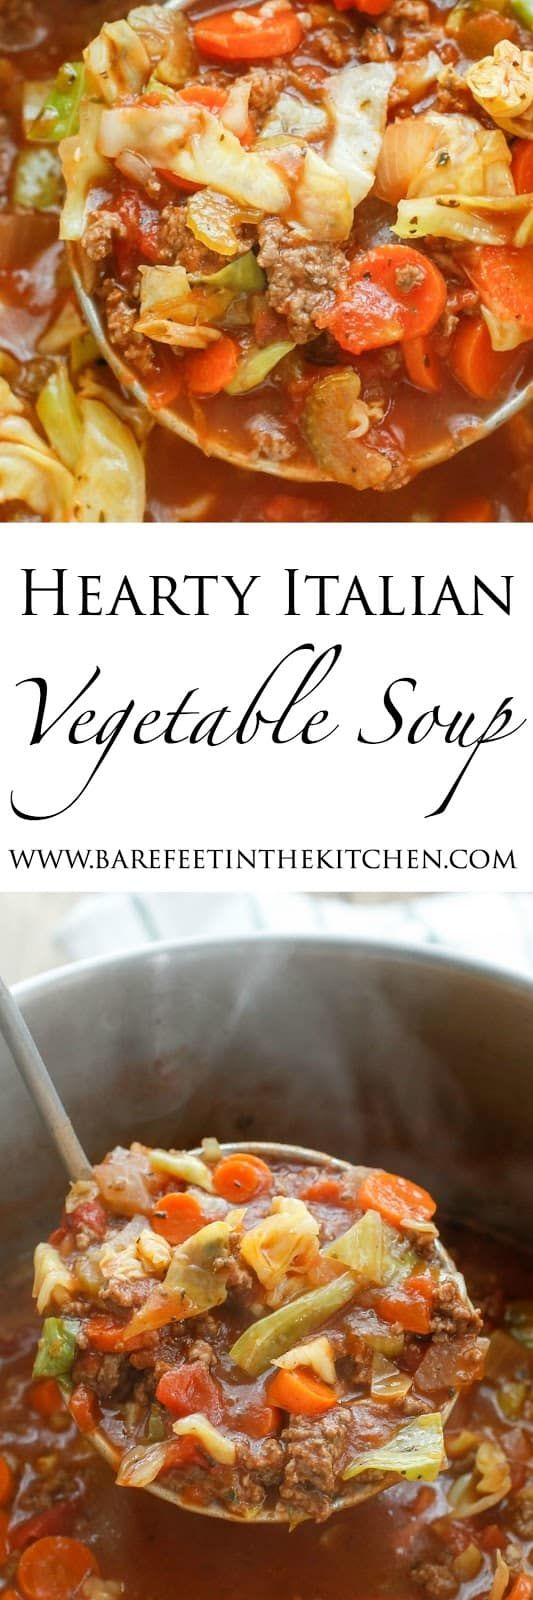 Hearty Italian Vegetable Beef Soup Recipe Filled With Chunks Of Ground Beef Plenty Of Vegetables And Gener Beef Soup Recipes Soup Recipes Vegetable Beef Soup